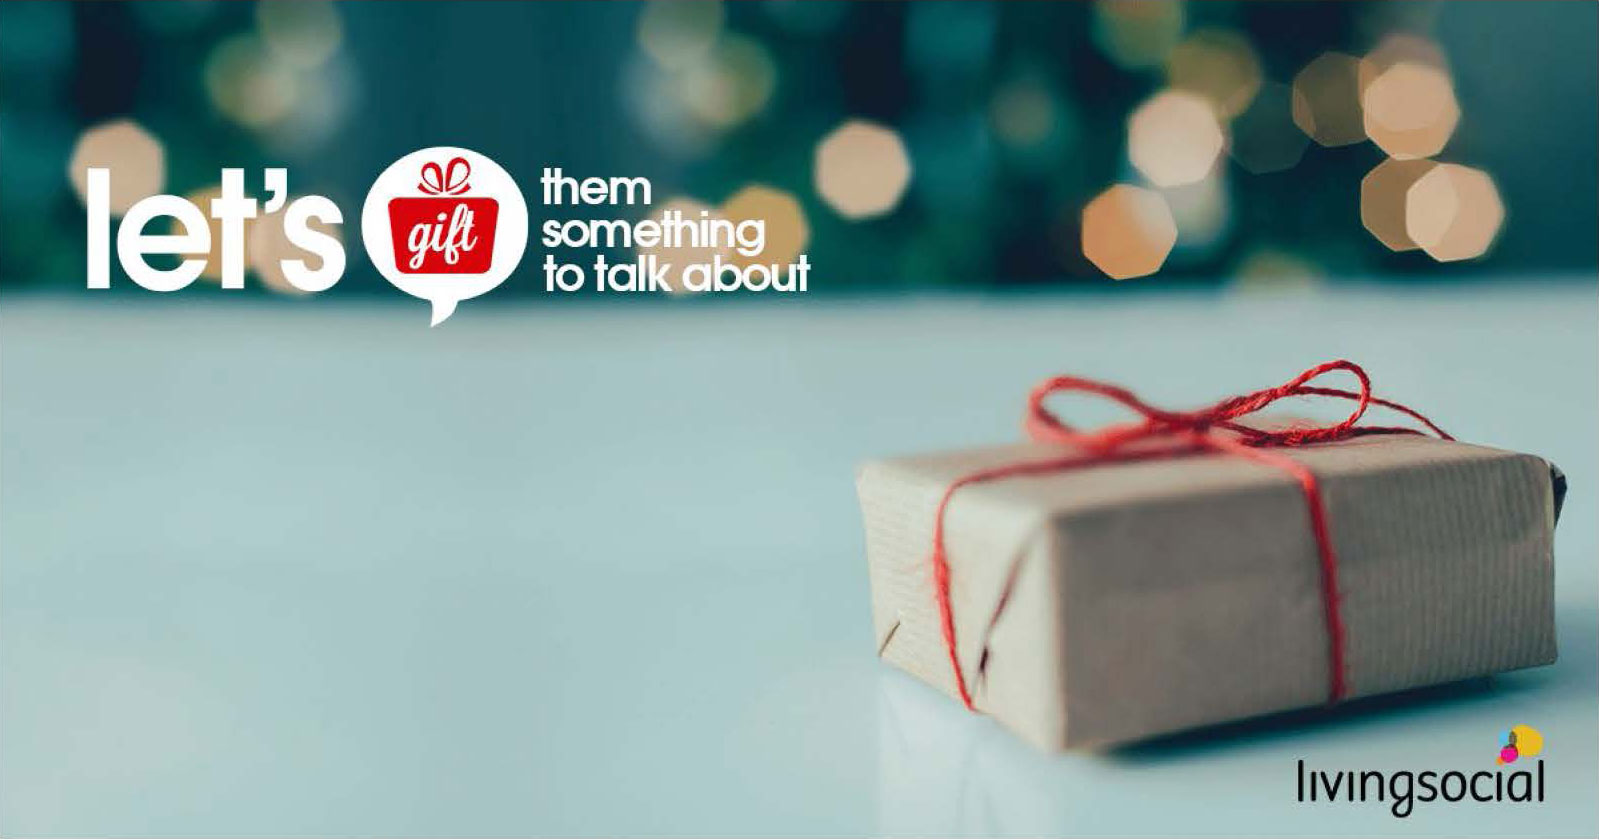 "LivingSocial Gift Guide & a Giveaway! ""Let's gift them something to talk about!"""